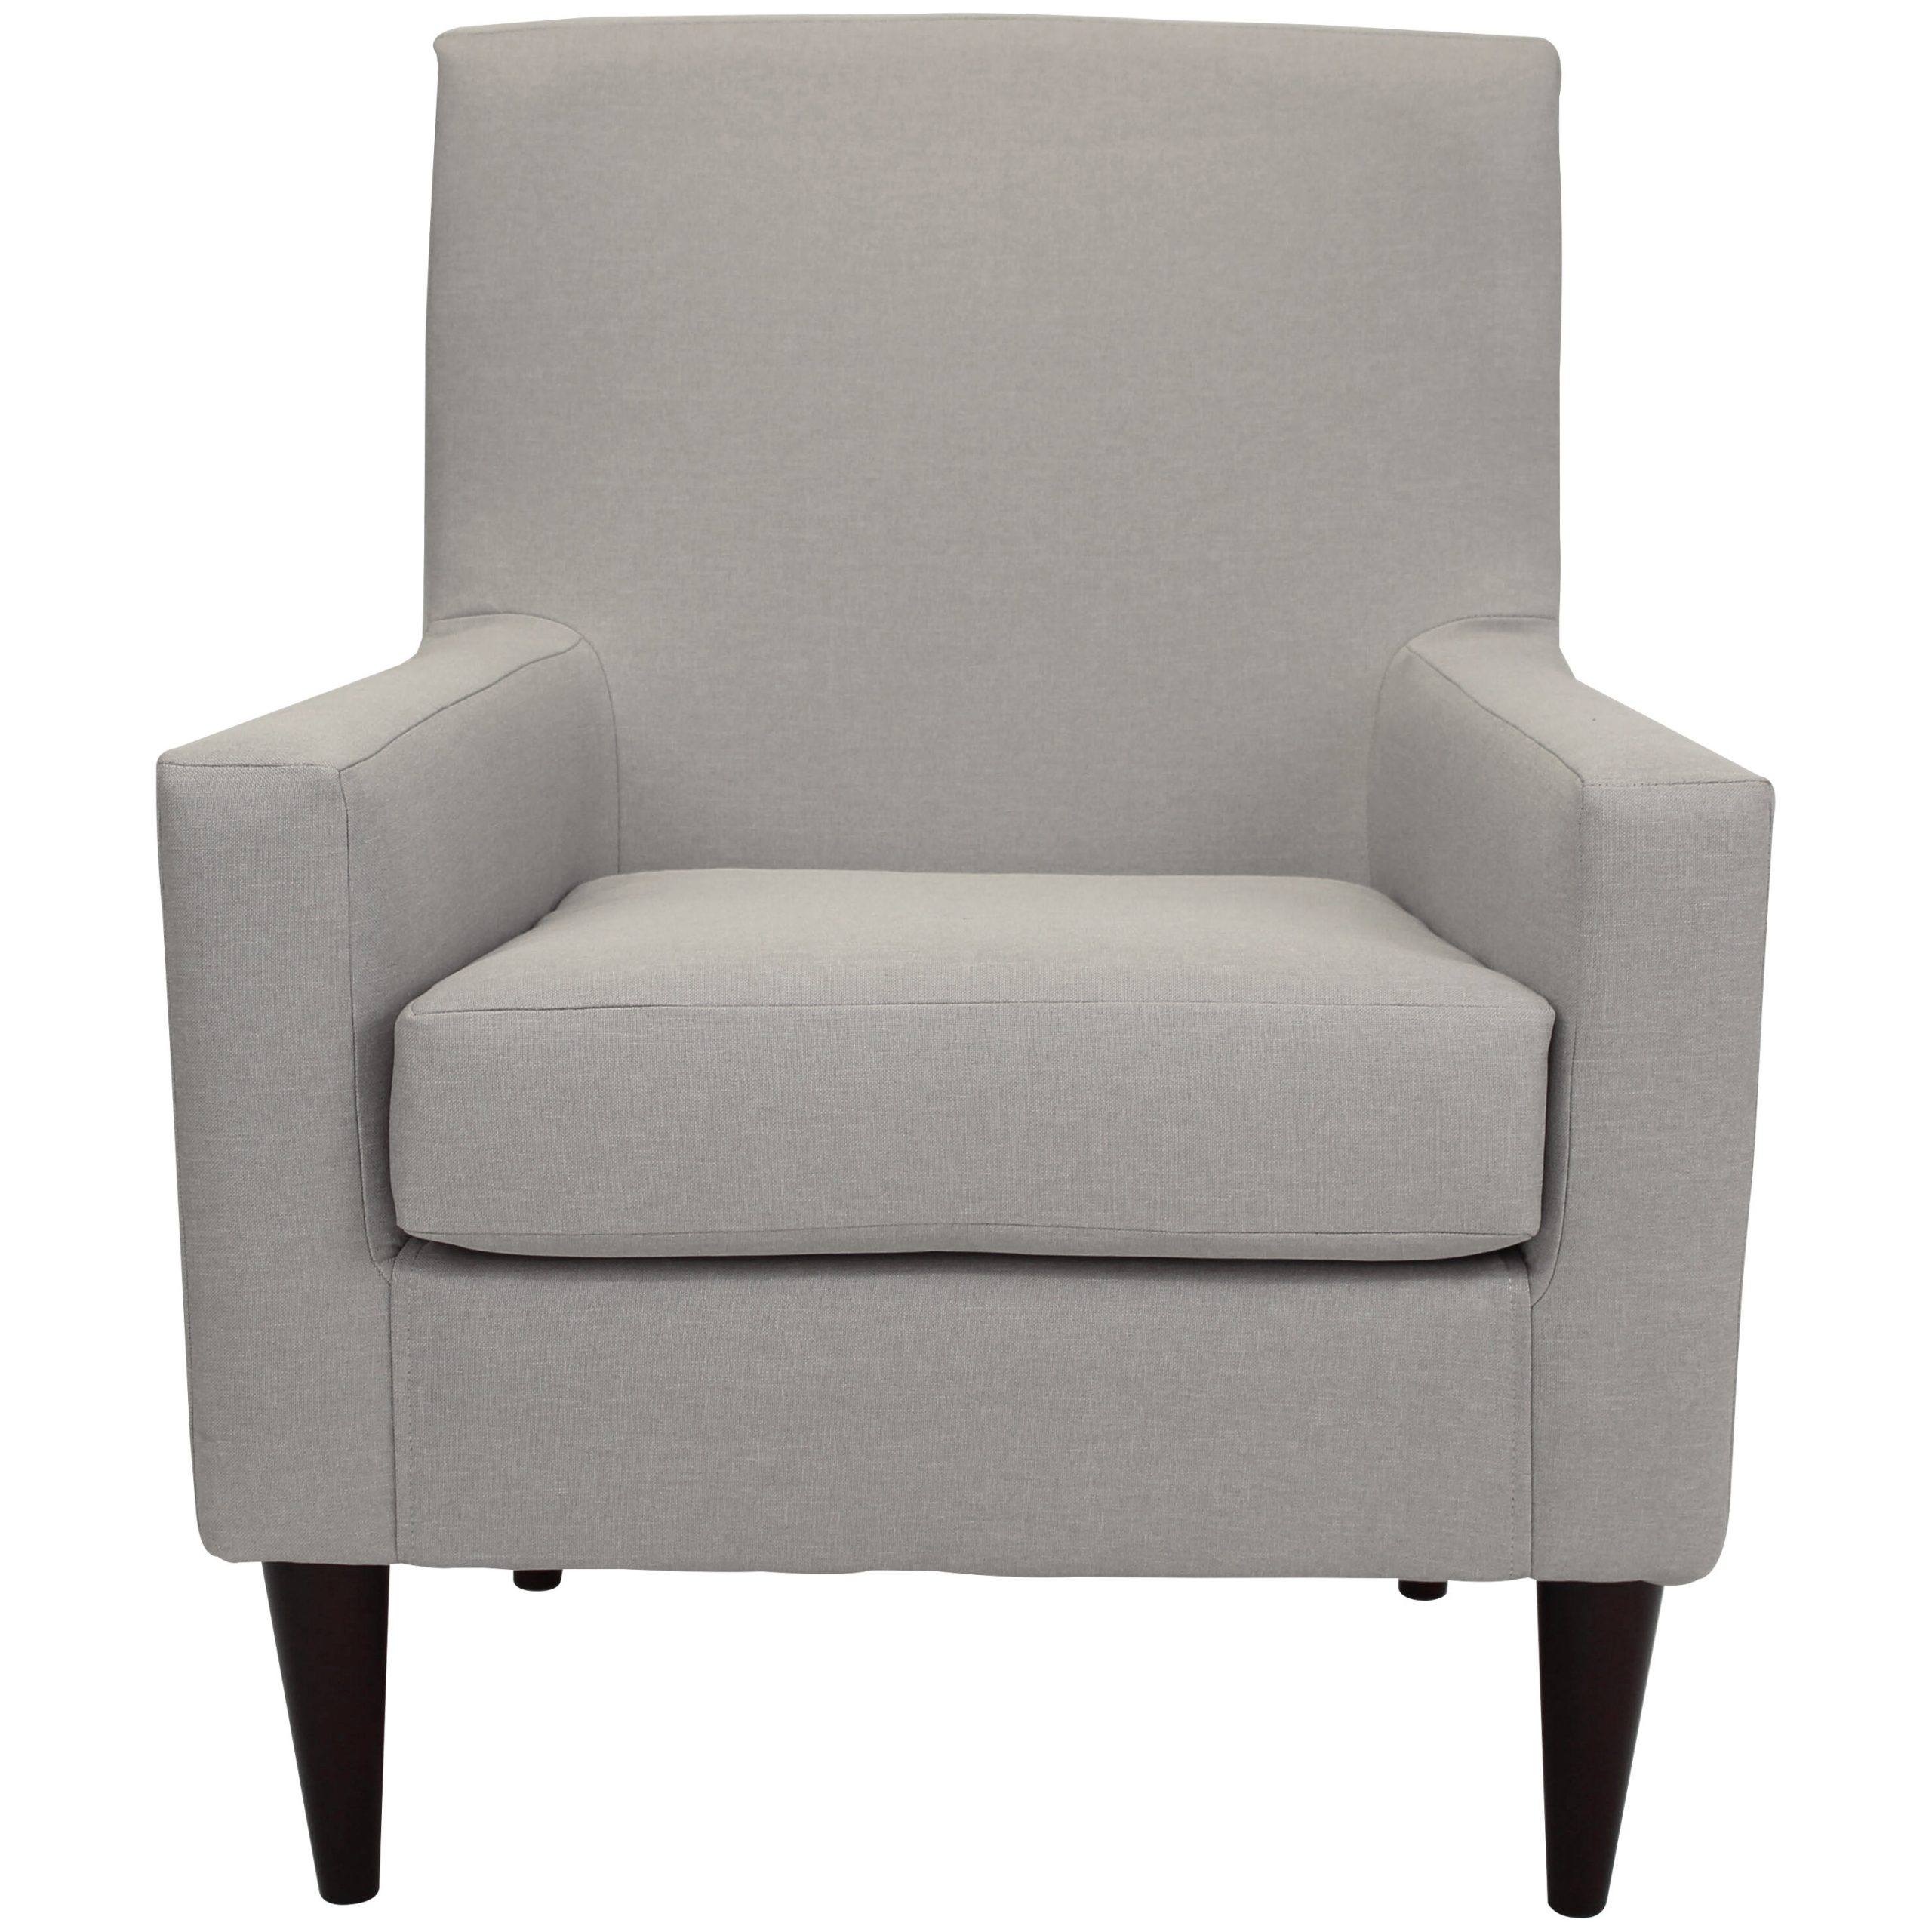 Donham Armchair Intended For Widely Used Donham Armchairs (View 4 of 20)